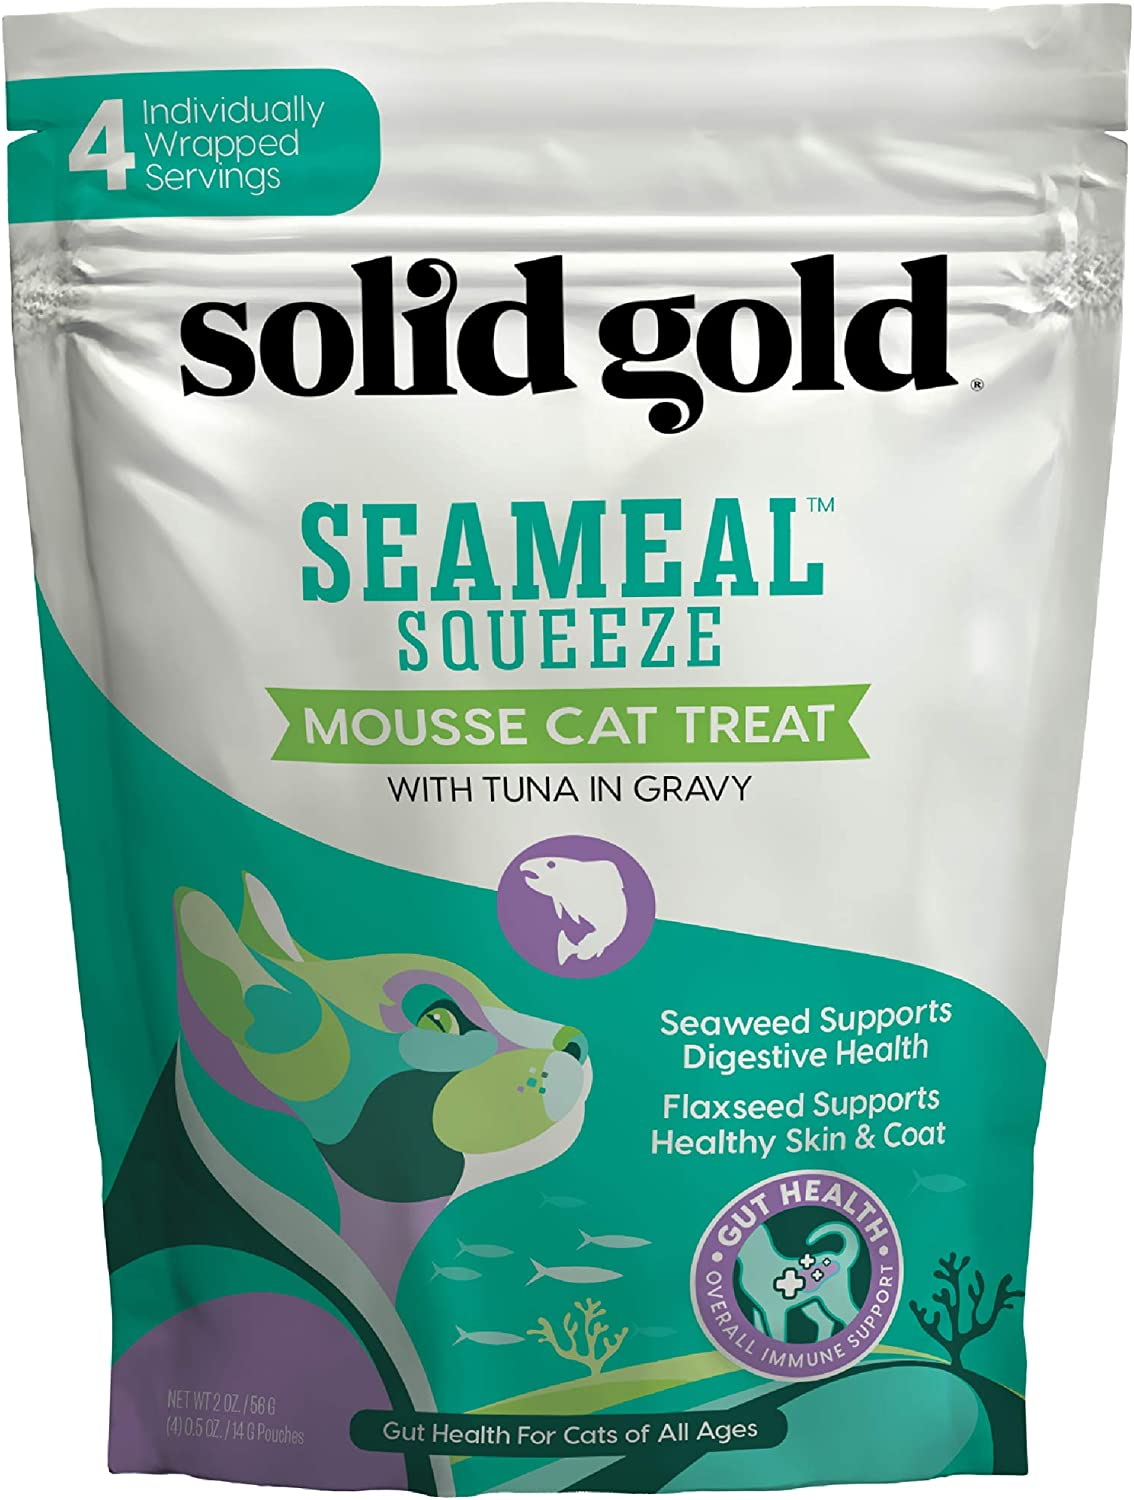 SeaMeal Squeeze Tuna Lickable Cat Treat with Seaweed for Skin, Coat, Digestive & Immune Health - Natural, Holistic, Grain-Free (48 Squeezes)